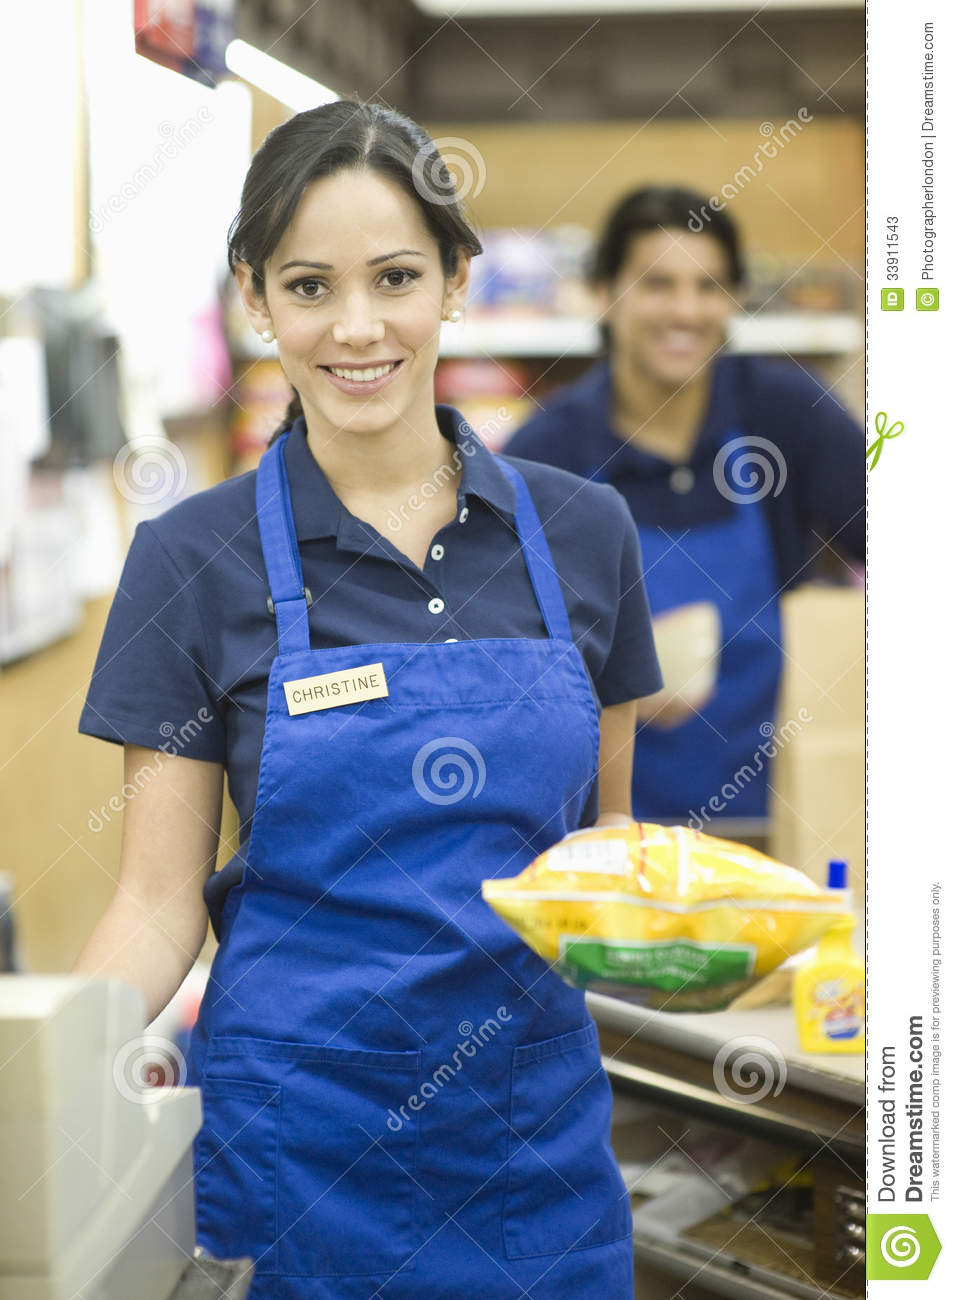 Blue apron careers